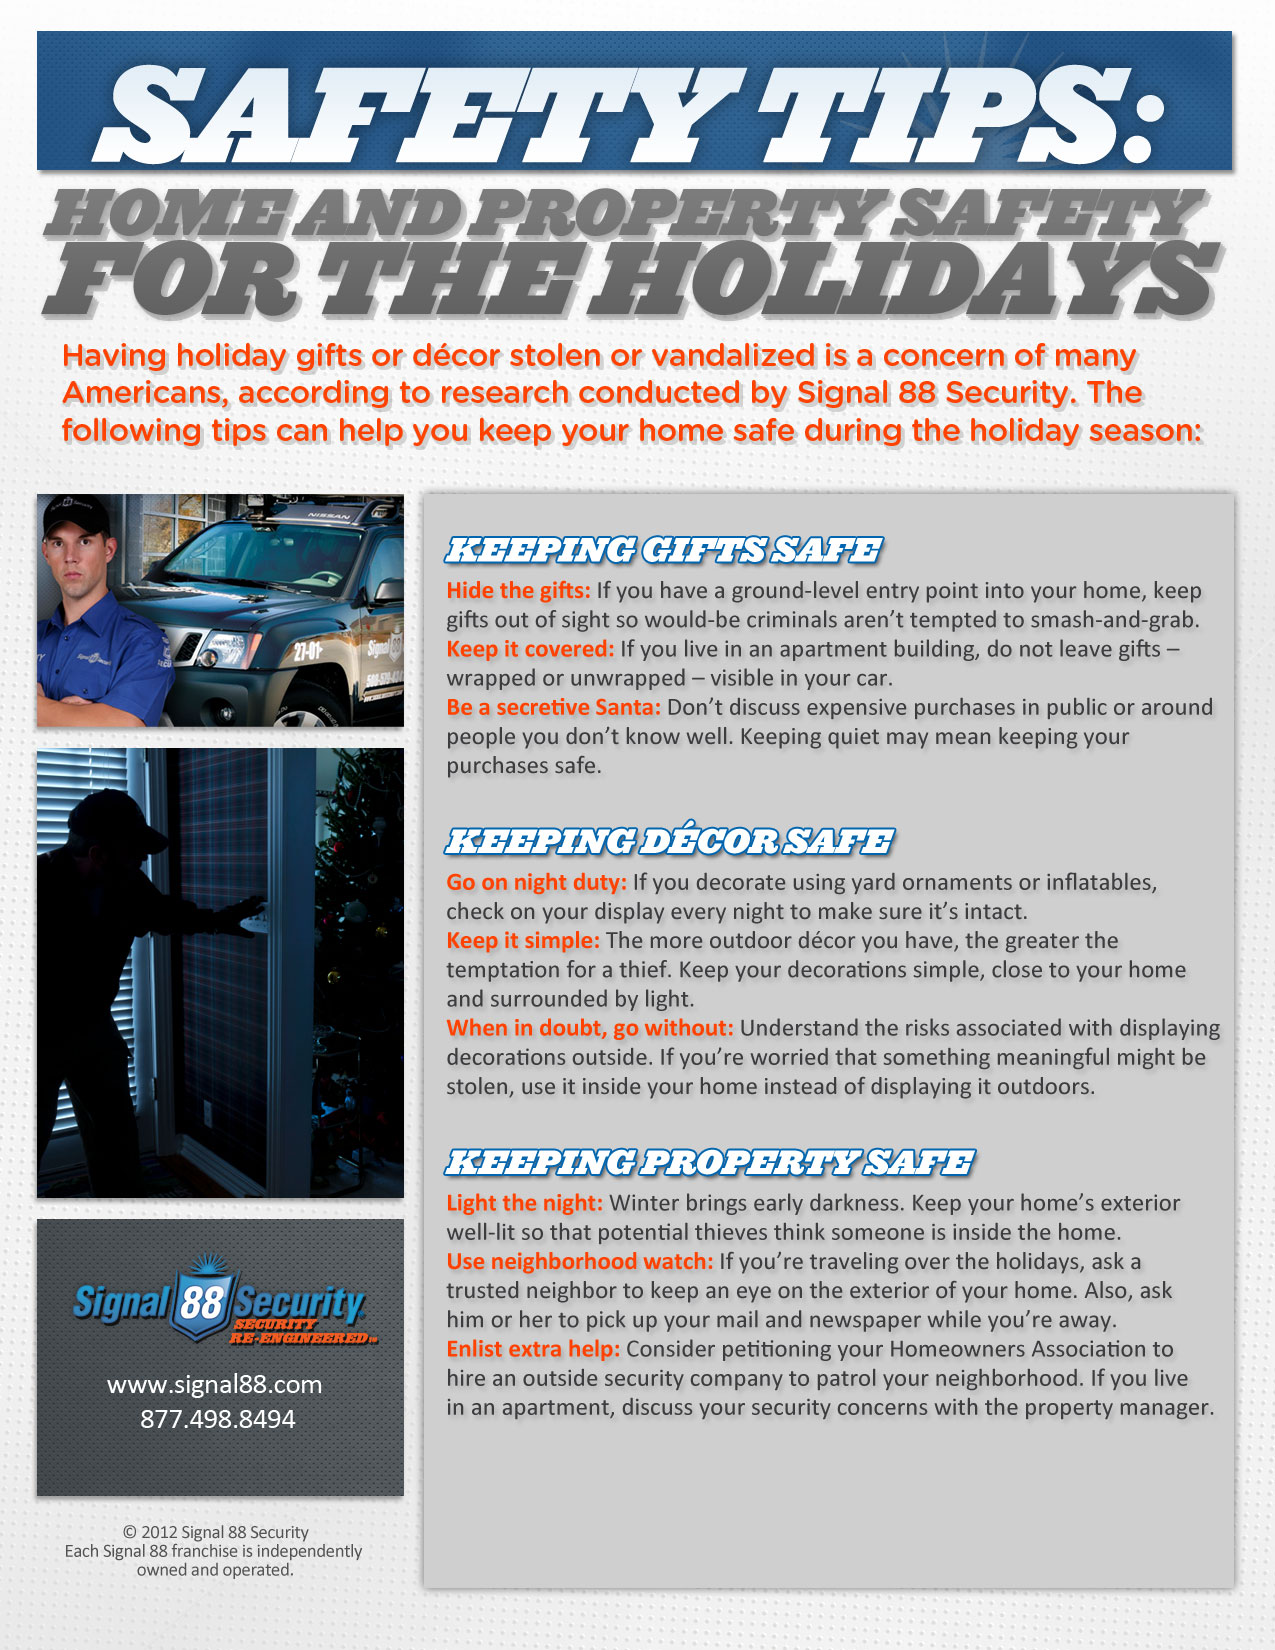 Home And Property Safety During The Holiday SeasonTips On How To Protect Your Decor Gifts Personal Holidays